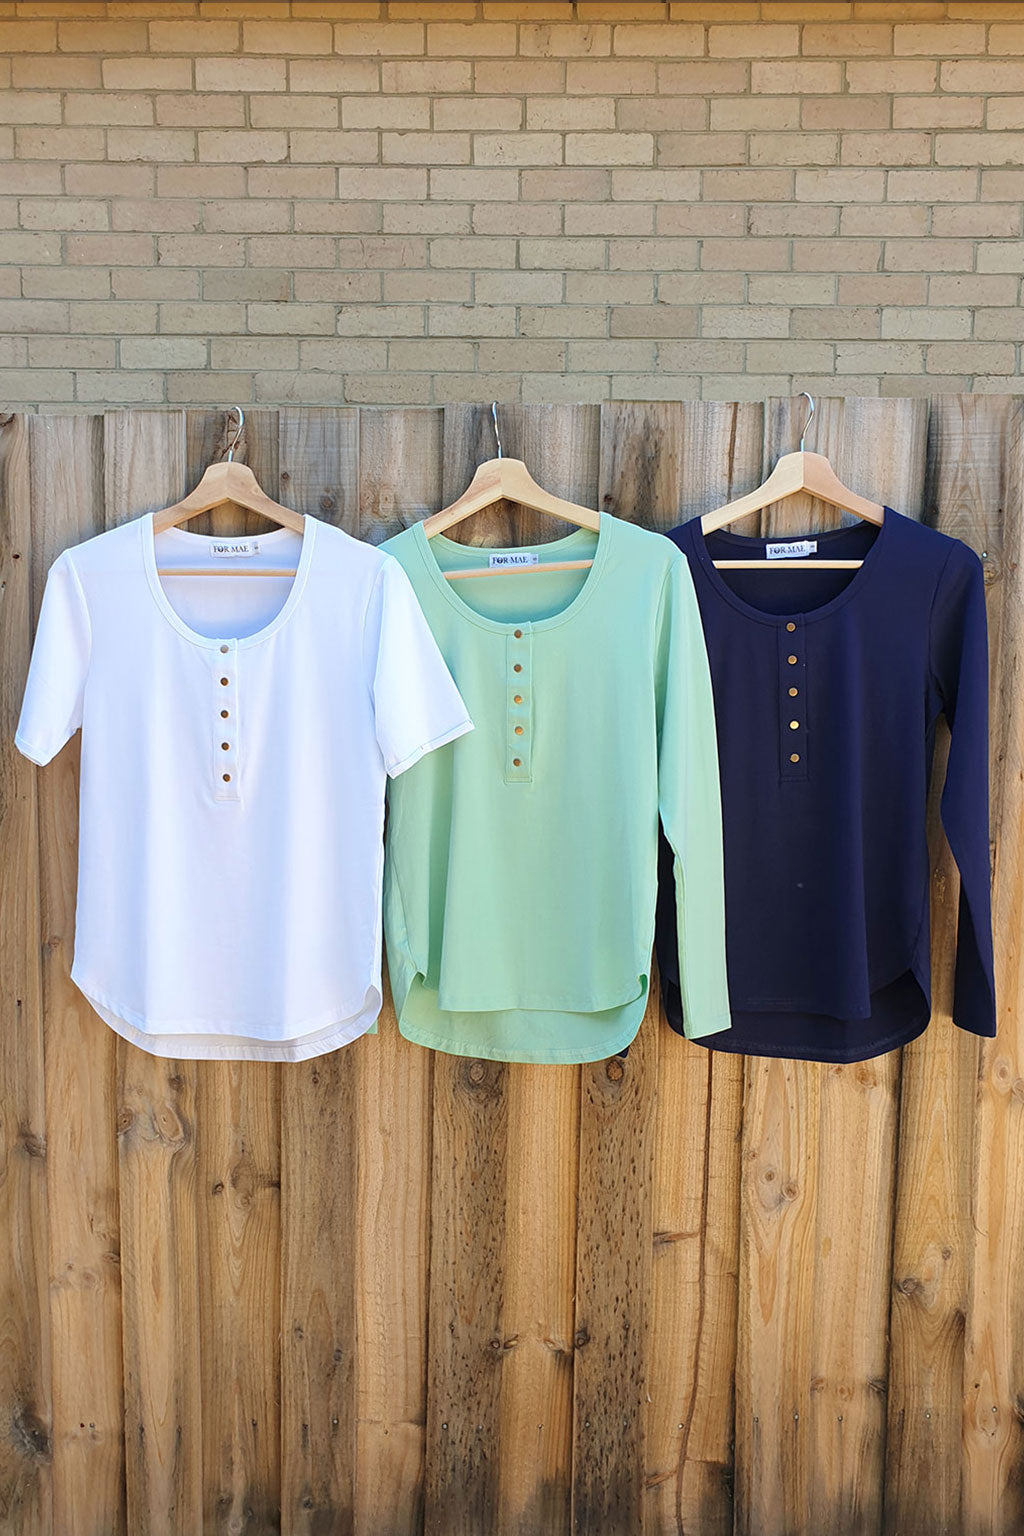 Brooke Tee Winter Essentials 3-Pack Bundle - White Short, Mint Long, Navy Long Sleeves